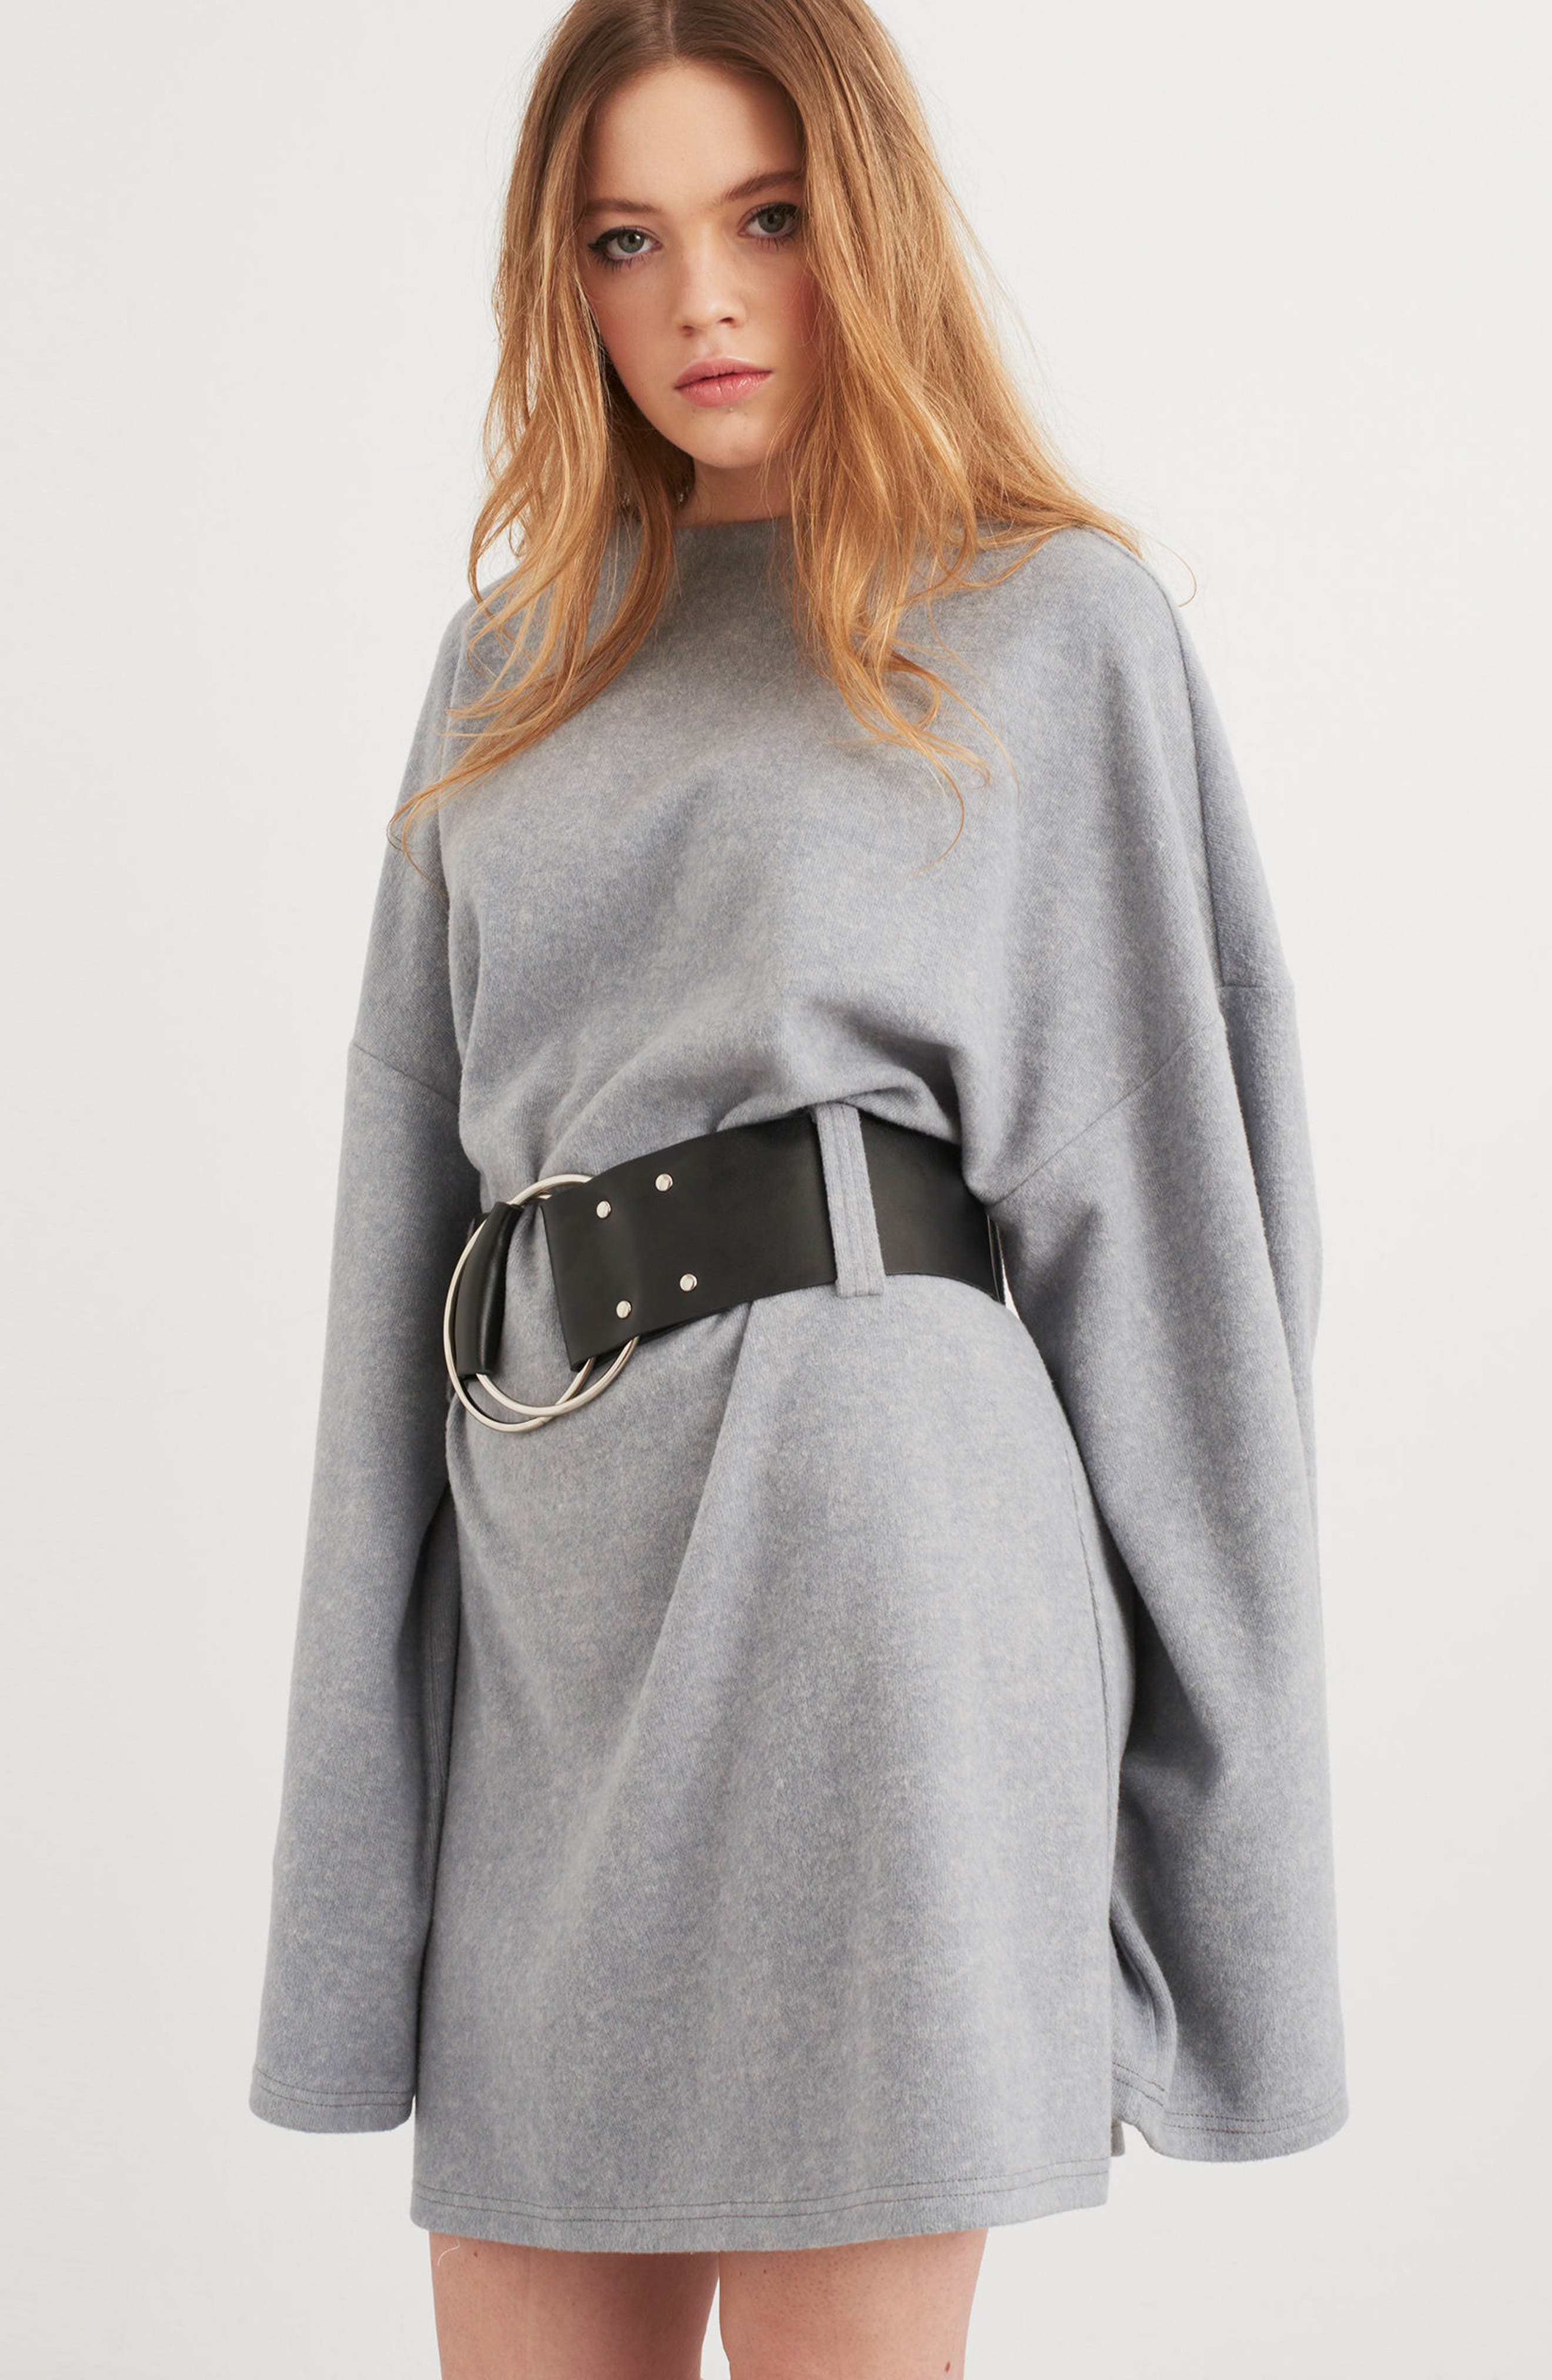 Belted Bell Sleeve Sweater Dress,                             Alternate thumbnail 7, color,                             020